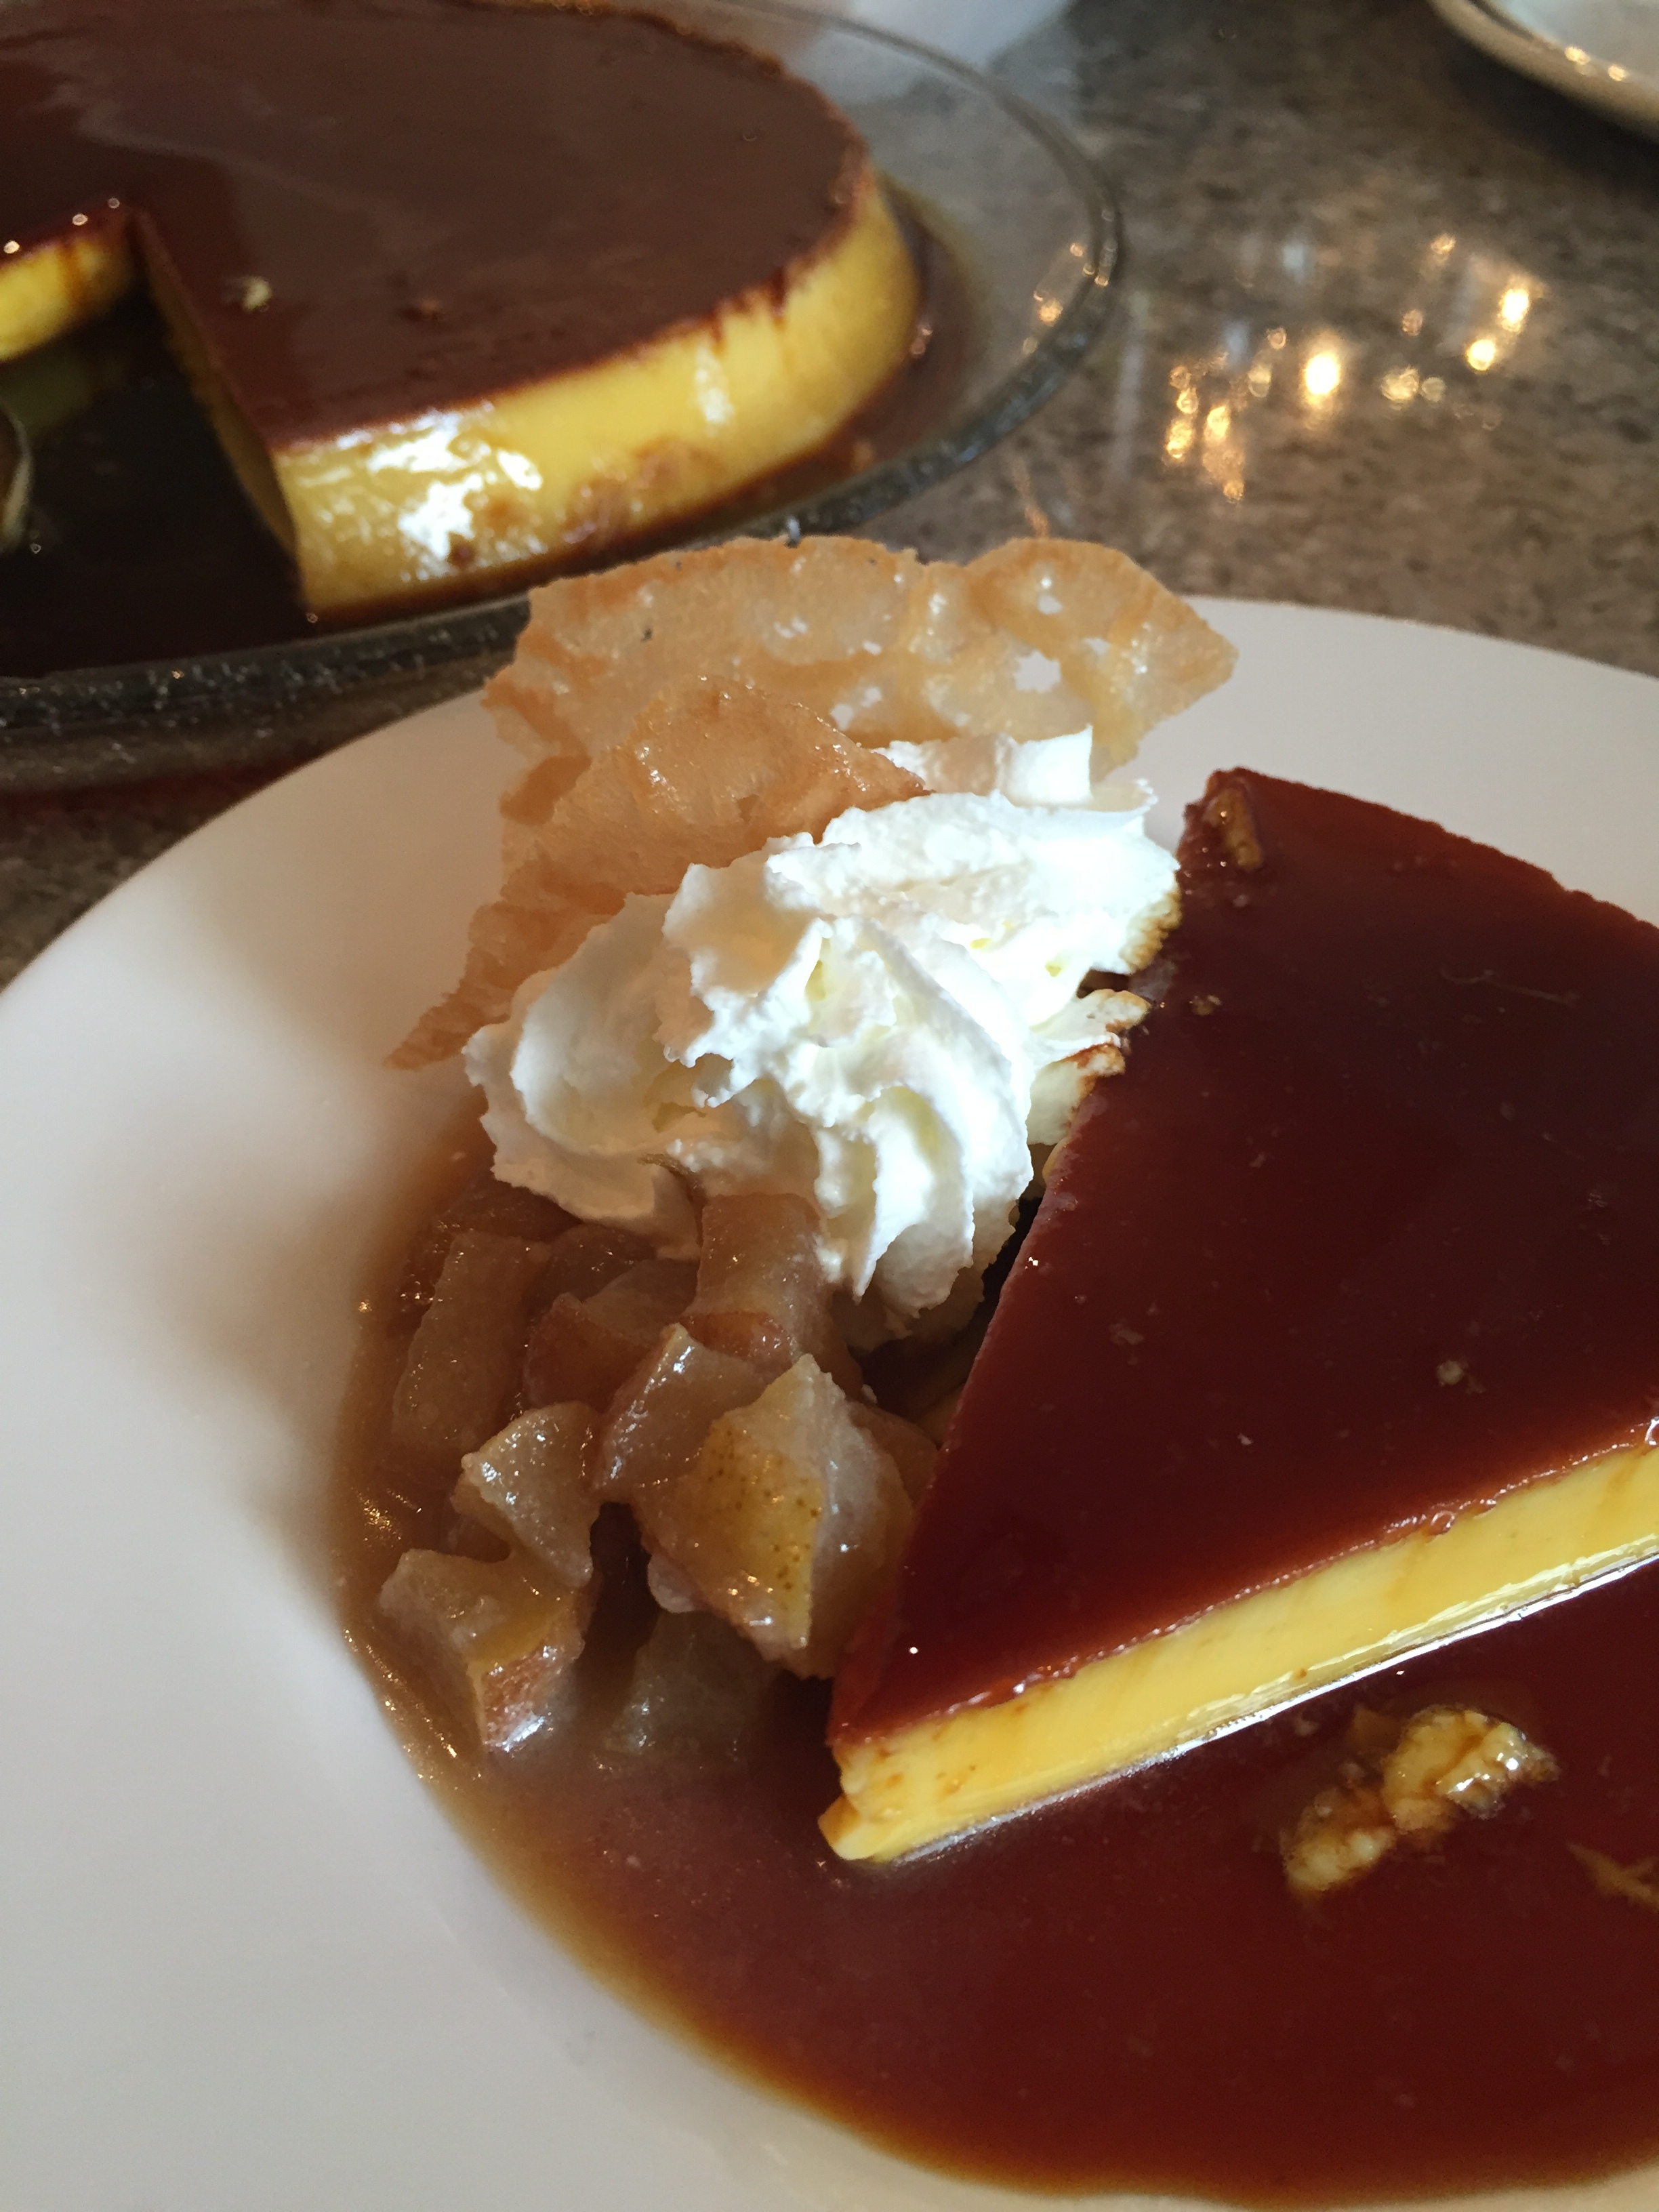 Flan with caramelized pears and brandy snaps